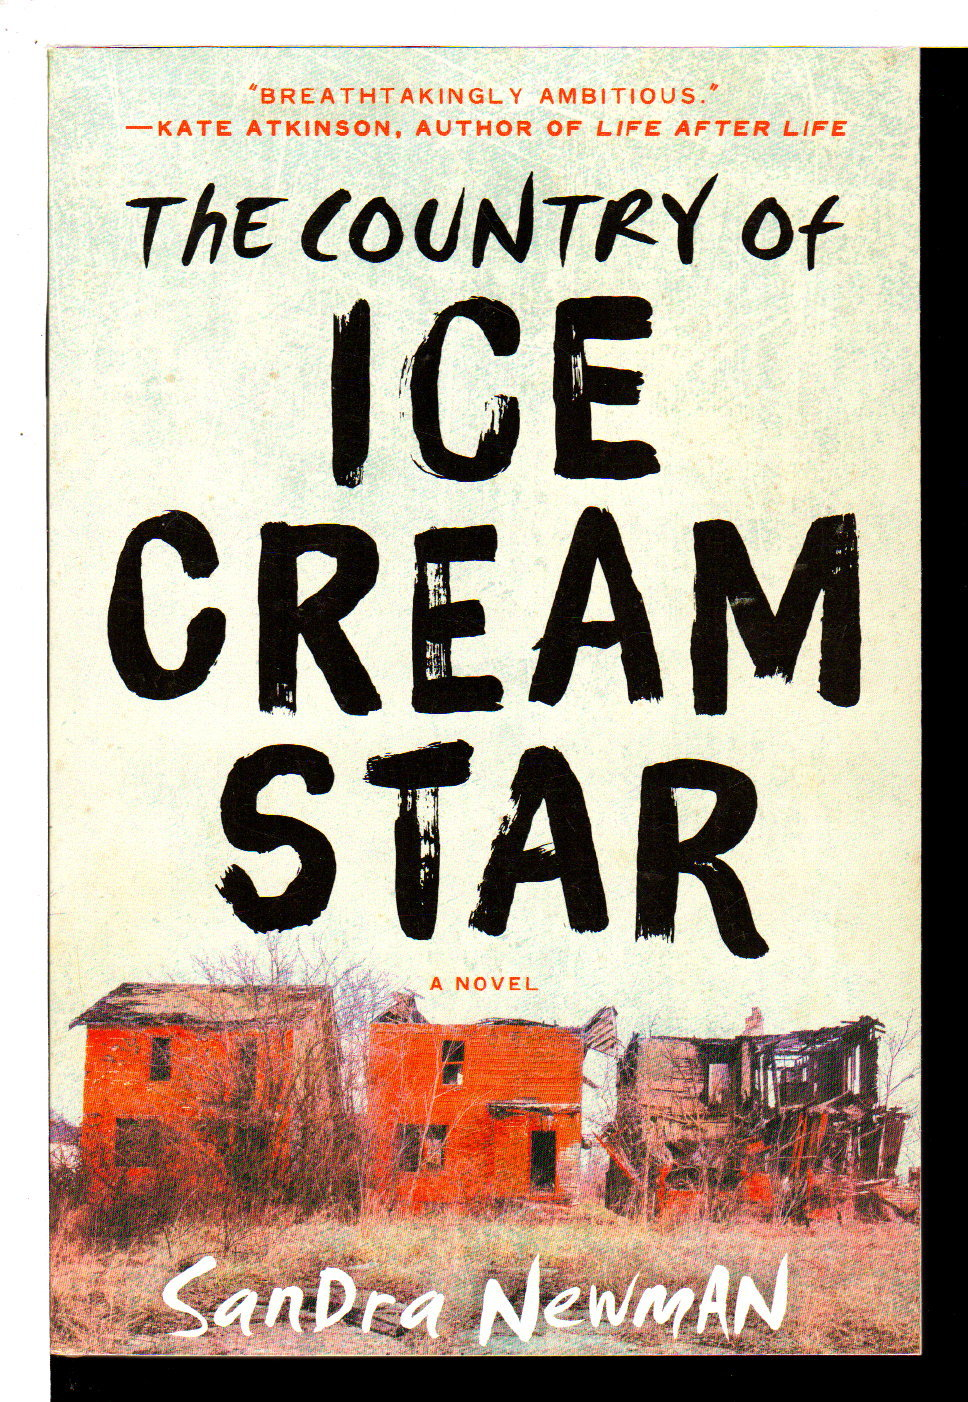 NEWMAN, SANDRA. - THE COUNTRY OF ICE CREAM STAR.